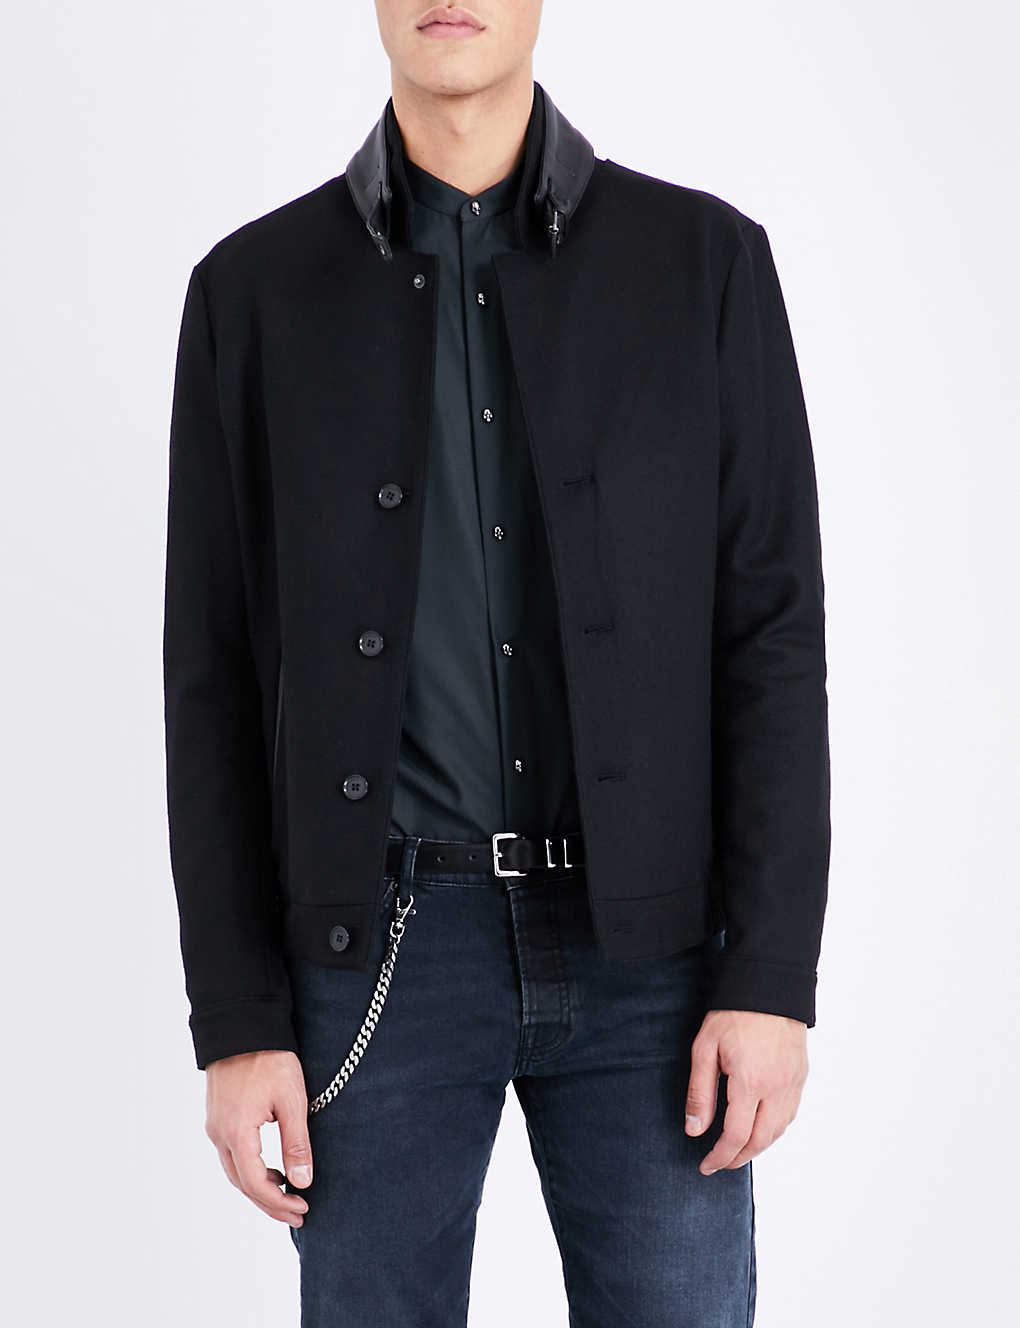 f3bc3d07eef THE KOOPLES - Buckle-detail wool-blend jacket | Selfridges.com